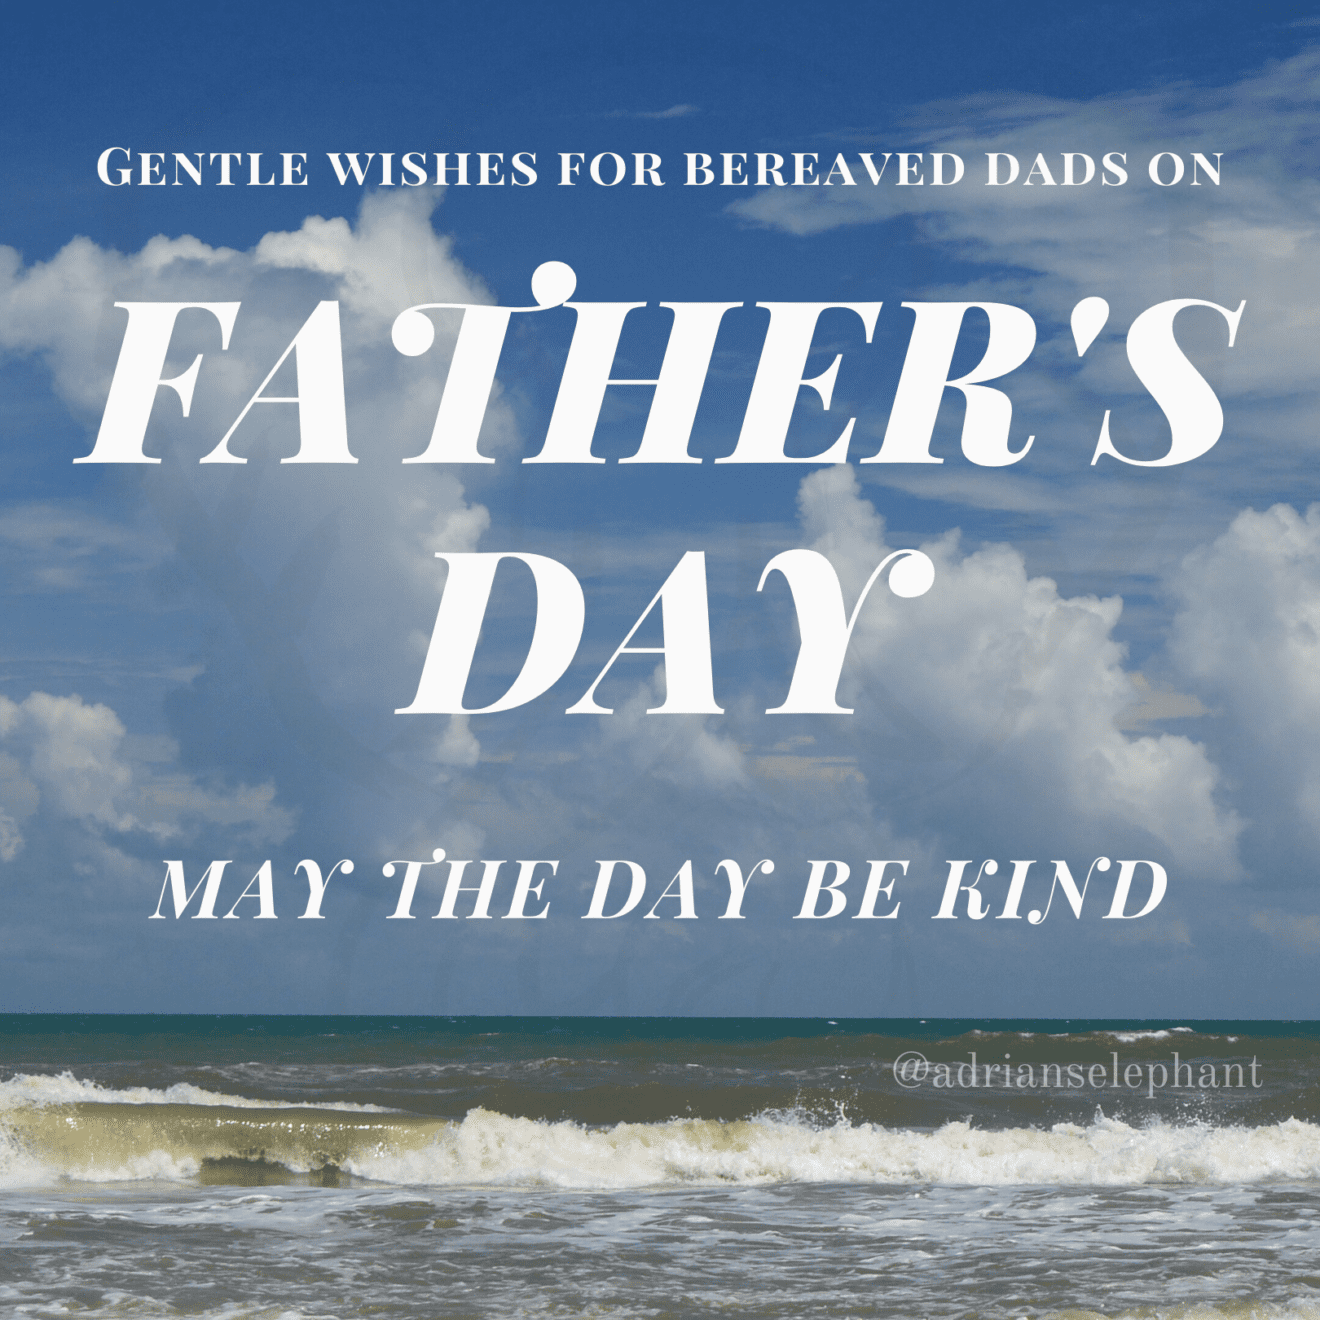 Gentle wishes for bereaved Dads on Father's Day. May the day be kind. -Miranda Hernandez, Adrian's Mother